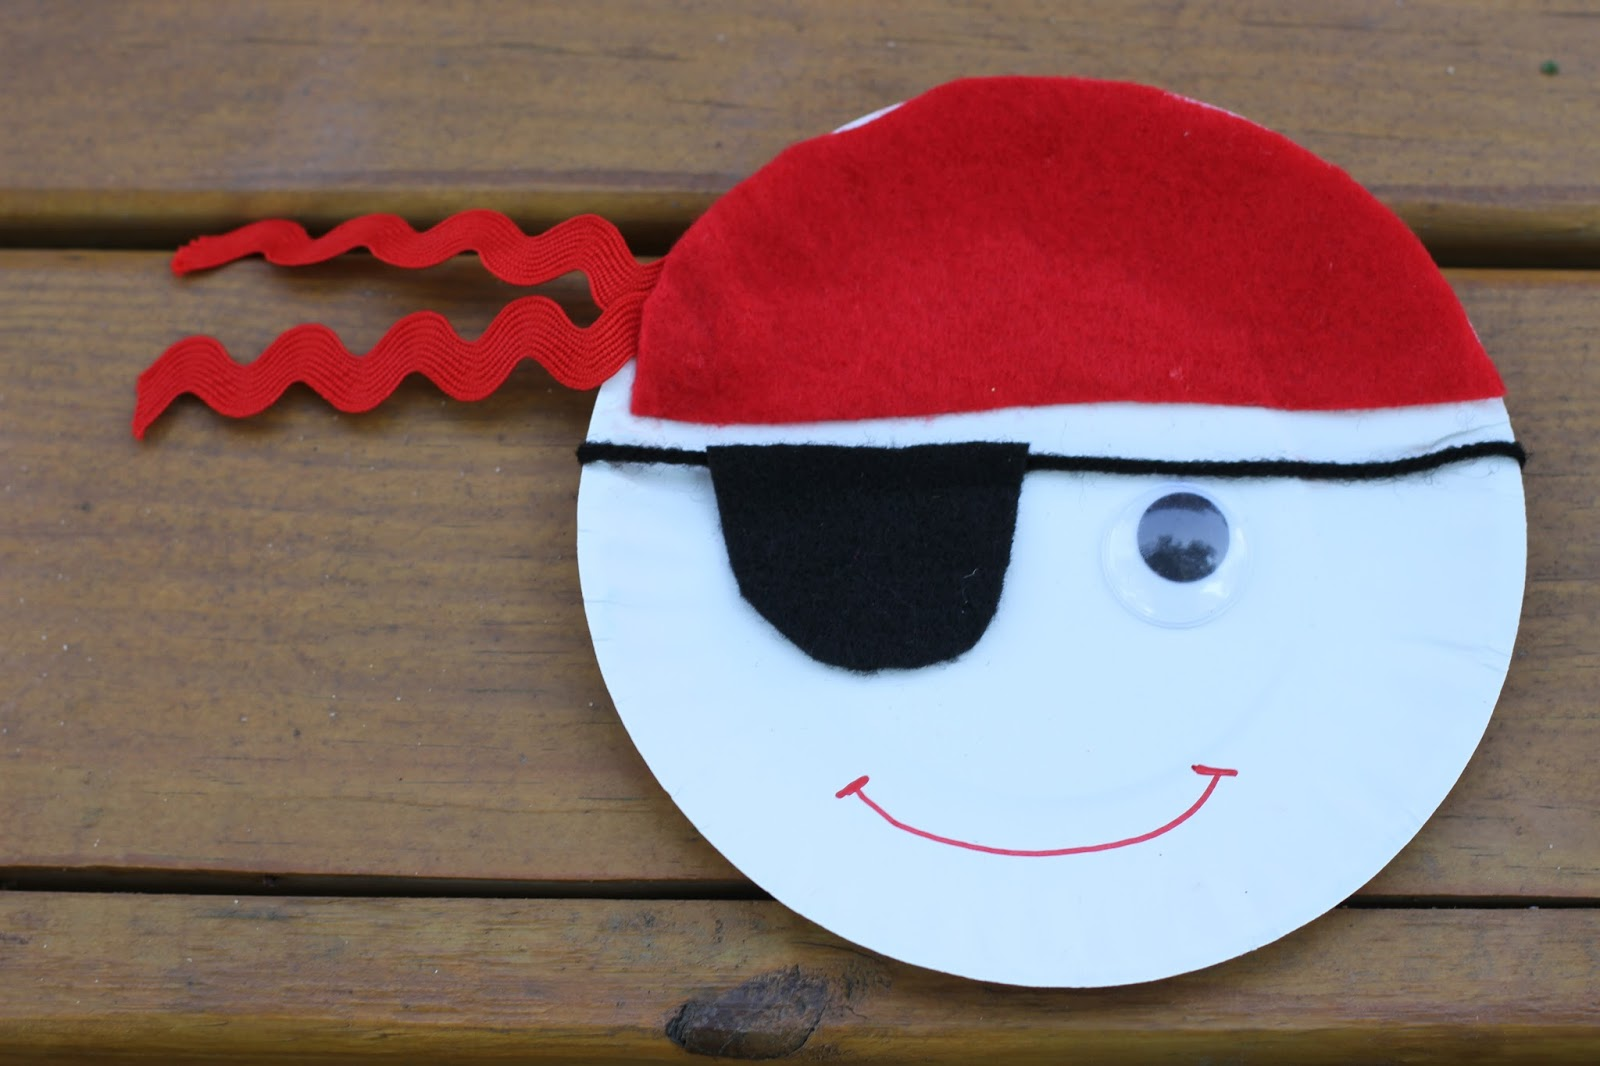 Paper Plate Pirates & Easy Summer Craft: Paper Plate Pirates - The Chirping Moms